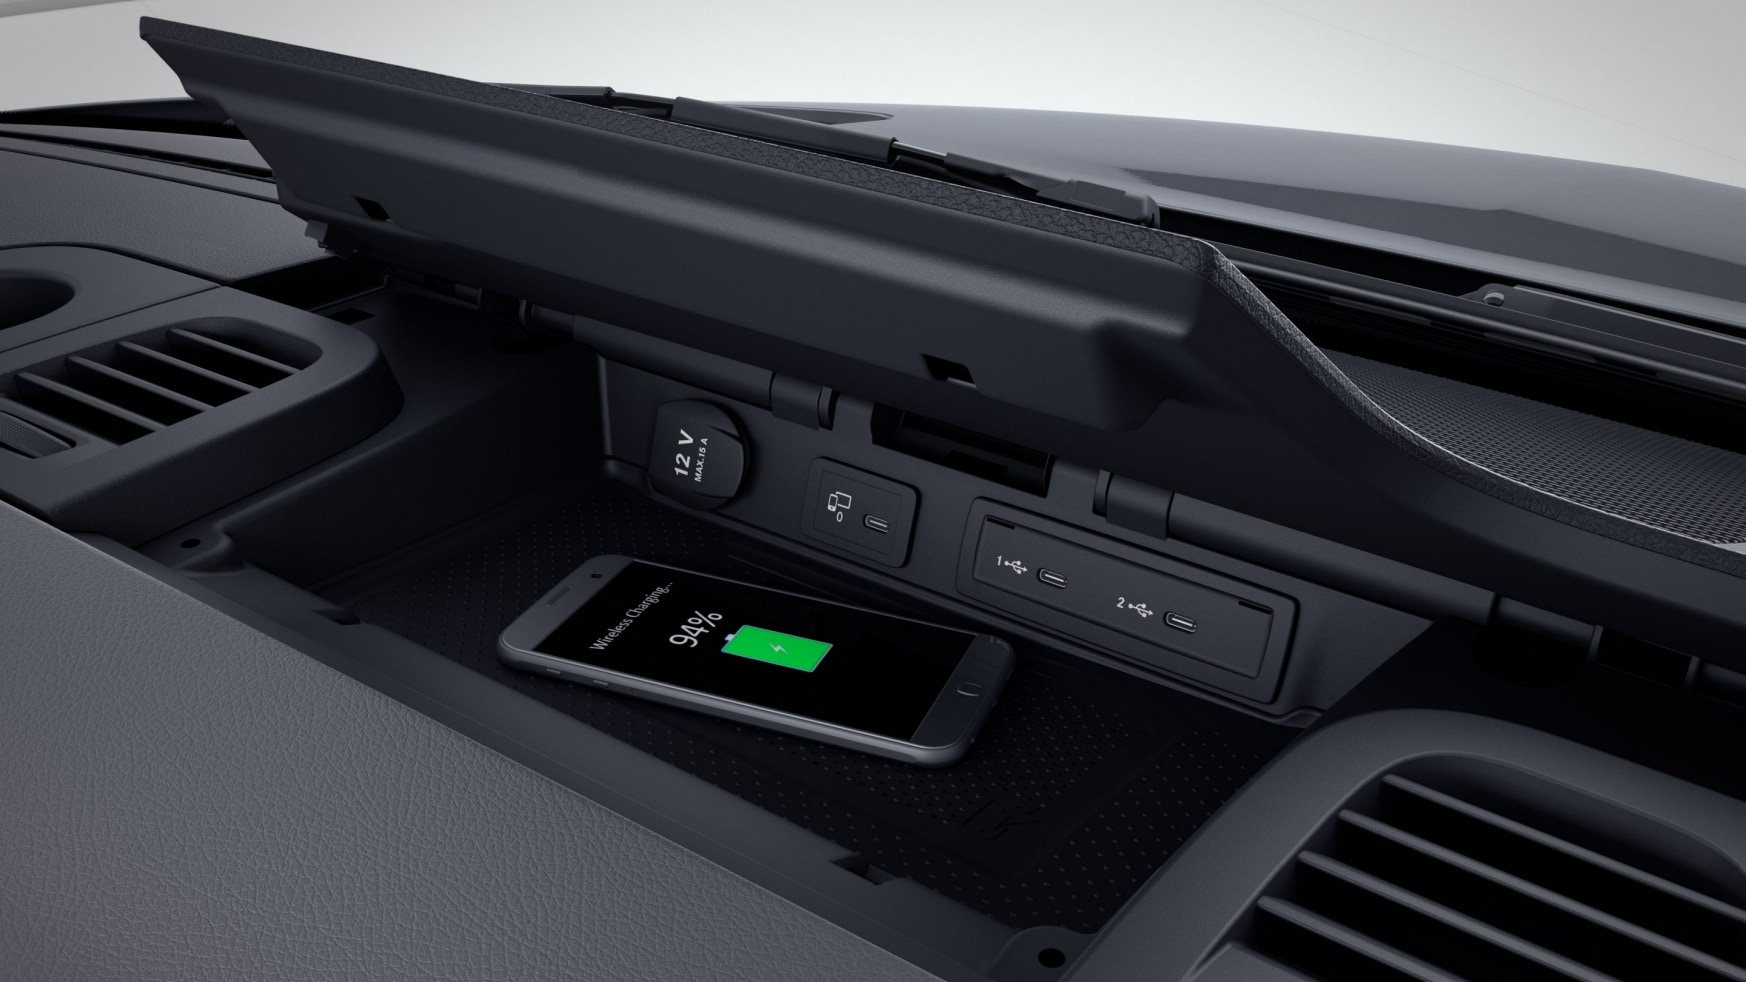 Sprinter Pritsche, Ablage für Smartphones incl. Wireless Charging